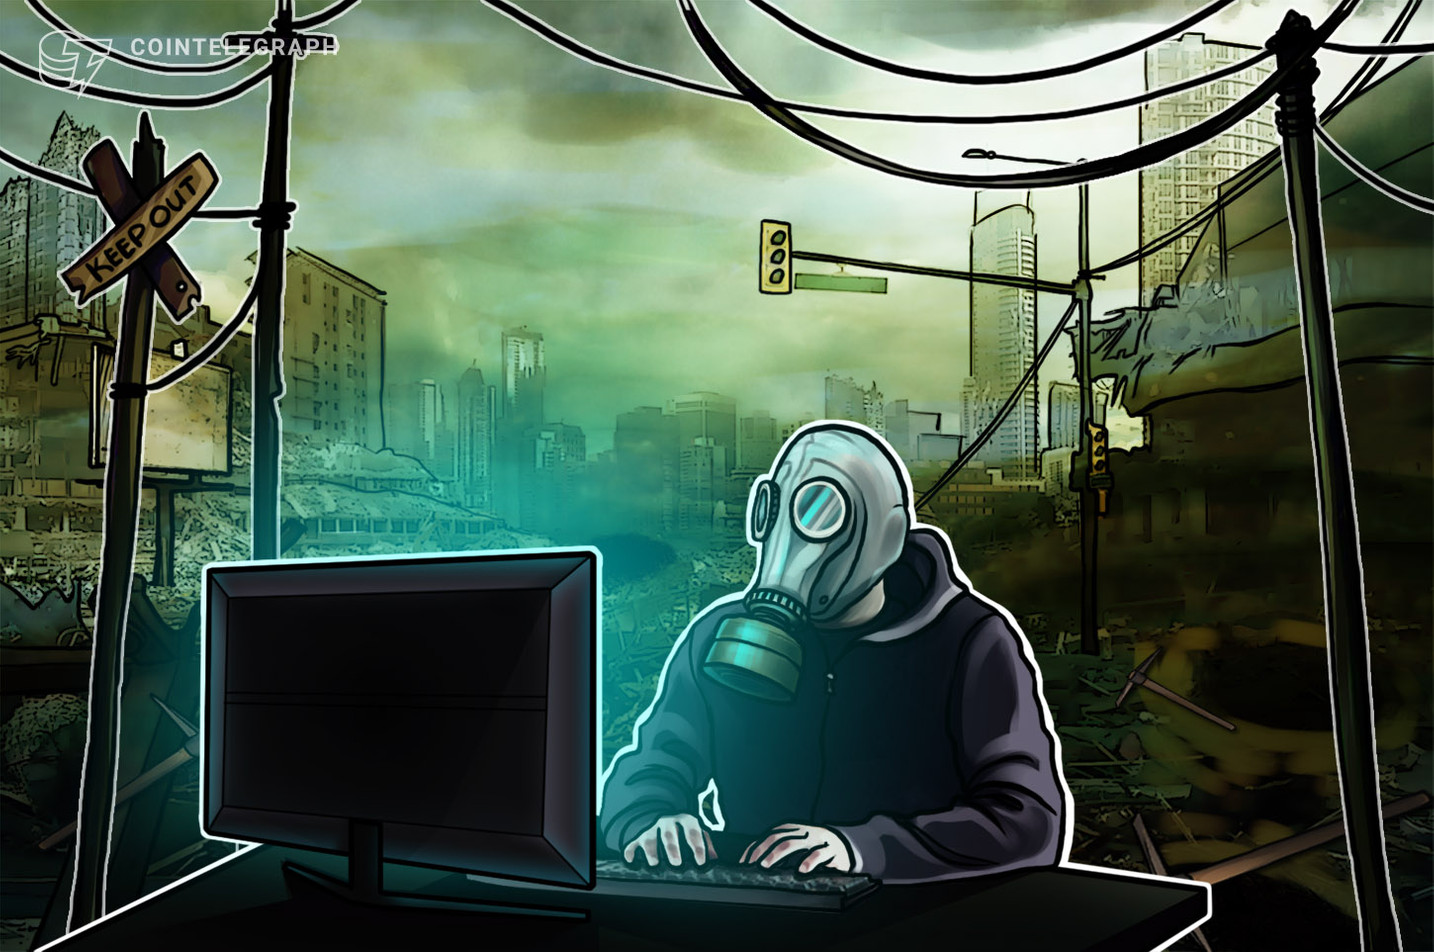 """Developer Completes """"Proof-of-Life"""" Off-Grid Crypto Transaction Primed for Post-Apocalypse"""